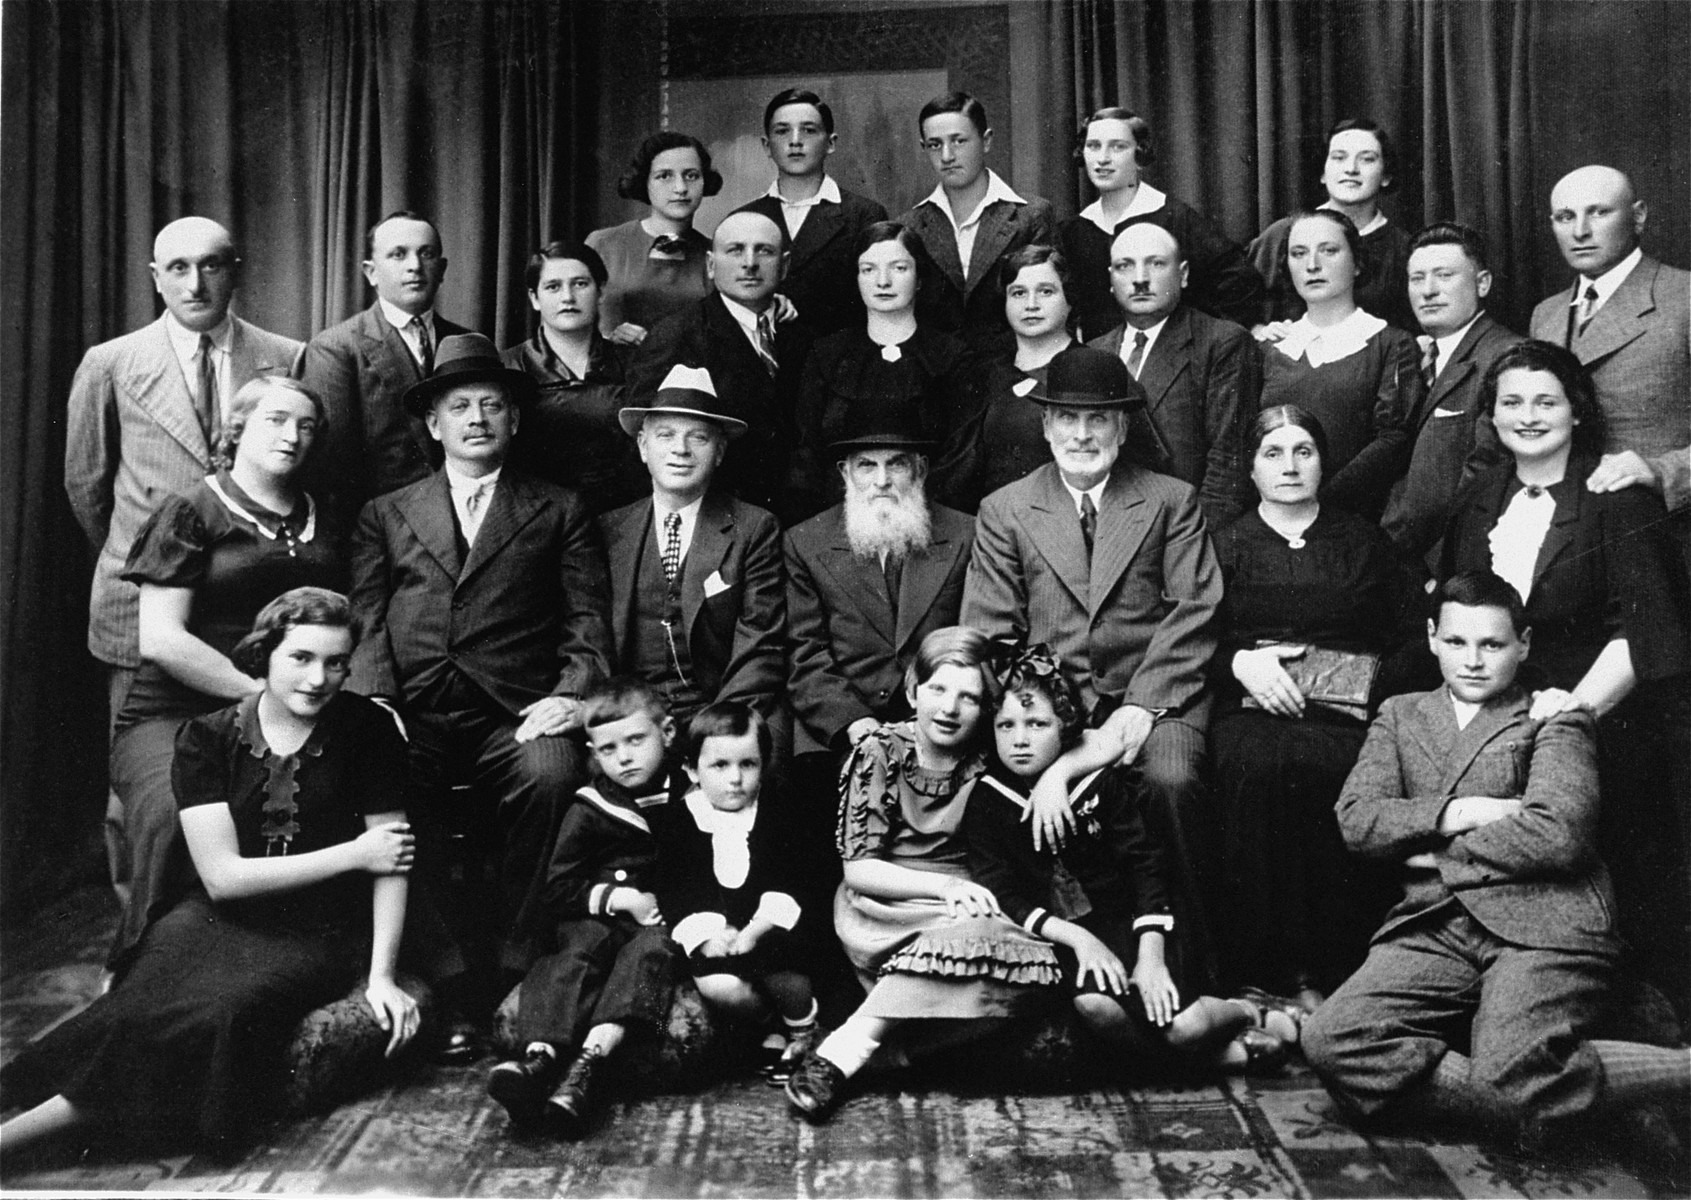 Group portrait of members of the Solski family taken during a family gathering in honor of two visiting great uncles, one from South Africa and one from America.  Rella Solski is the child pictured in the front row in the sailor suit.  Rella Solski (donor) and her cousin, Mina Braudh were the only survivors.   Bottom row, left to right Moshe Solski Label Solski Rella Solski, daughter of Chatzkel Eta Rella, cousin of donor Rella, donor Kera Solski, cousin of donor  Second row from bottom, left to right Dina Solski, aunt of donor, Peretz's wife Wolf Solski, uncle from South Africa Joe Saul, uncle from United States Zusal Solski Abe-y Solski, donor's grandfather Donor's step-grandmother Mania Solski, wife of Solomon  Third row from bottom, left to right Peretz Solski, donor's uncle on father's side, husband of Dina Chatzkel Solski, donor's uncle on father's side Chaja Solski, donor's aunt, pregnant in picture Joe Solski, husband of Gita, father of Label and Eta Rella Gita Solski, wife of Joe Solski, mother of Label and Eta Rella Dina Solski, donor's mother Zusel Solski, donor's father Rivka Braudh, donor's aunt on father's side Alter Braudh, Rivka's husband Solomon Solski, Mania's husband  Fourth row from bottom, left to right Mina, daughter of Dina and Peretz Charles, brother of donor Label, son of Dina and Peretz Brira Braudh, son of Rivka and Alter Mina Braudh, daughter of Rivka and Alter